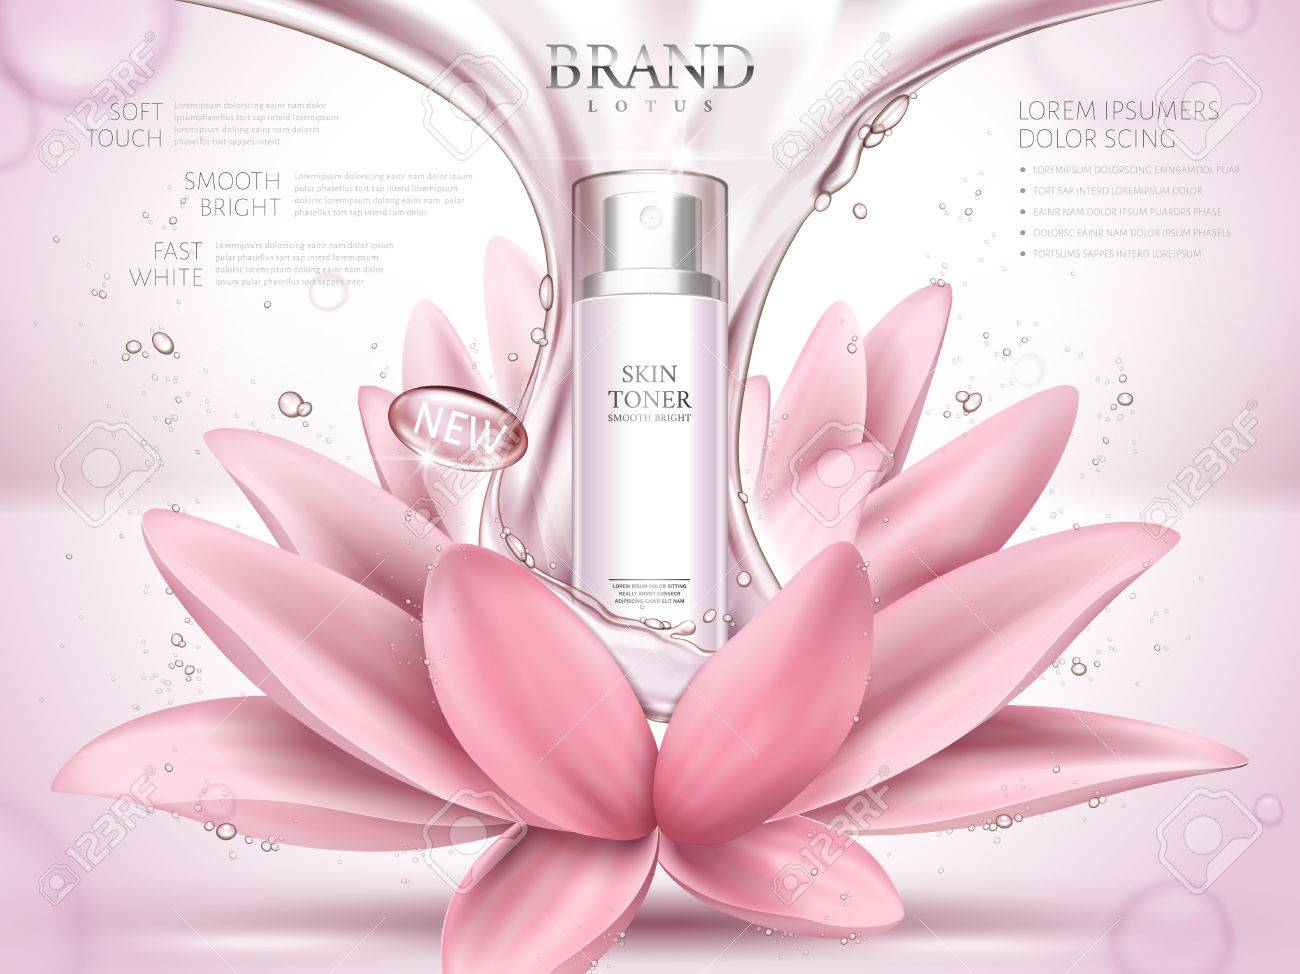 A Lotus Skin Toner Ad Contained In Bottle With Glossy Fluid